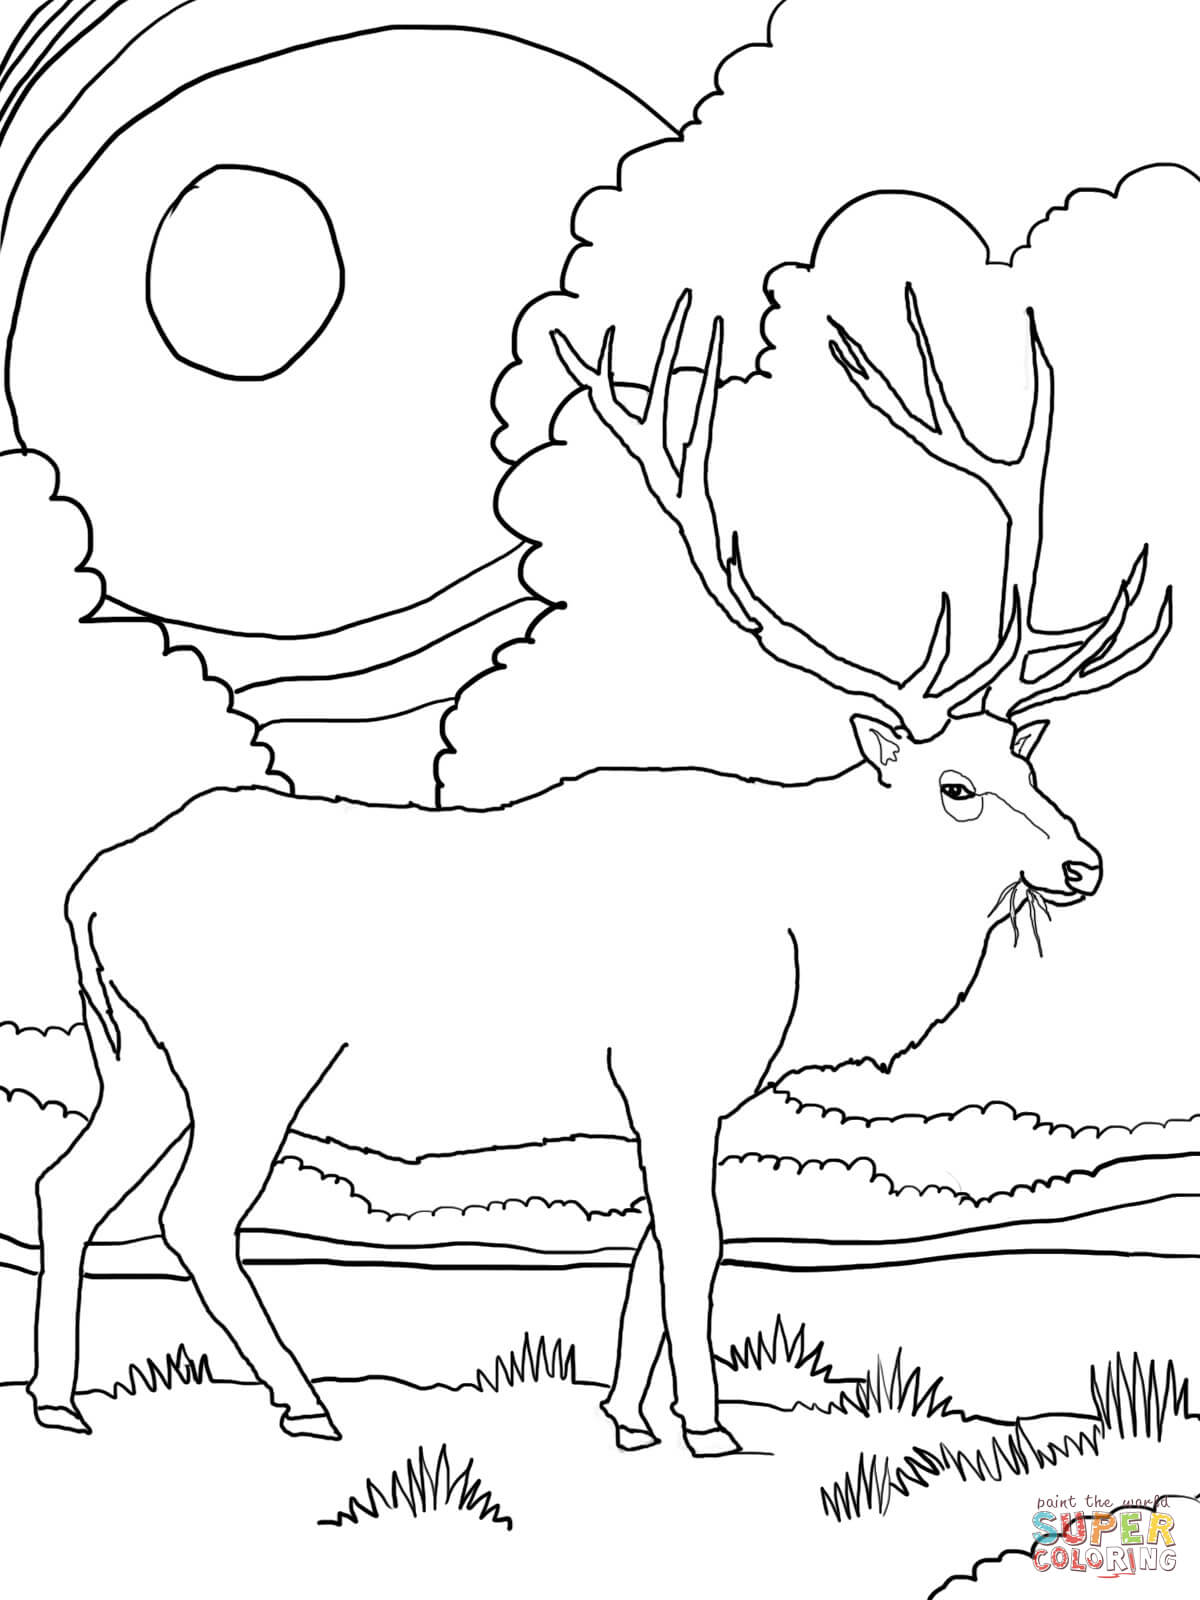 elk coloring pages bull elk coloring pages download and print for free coloring elk pages